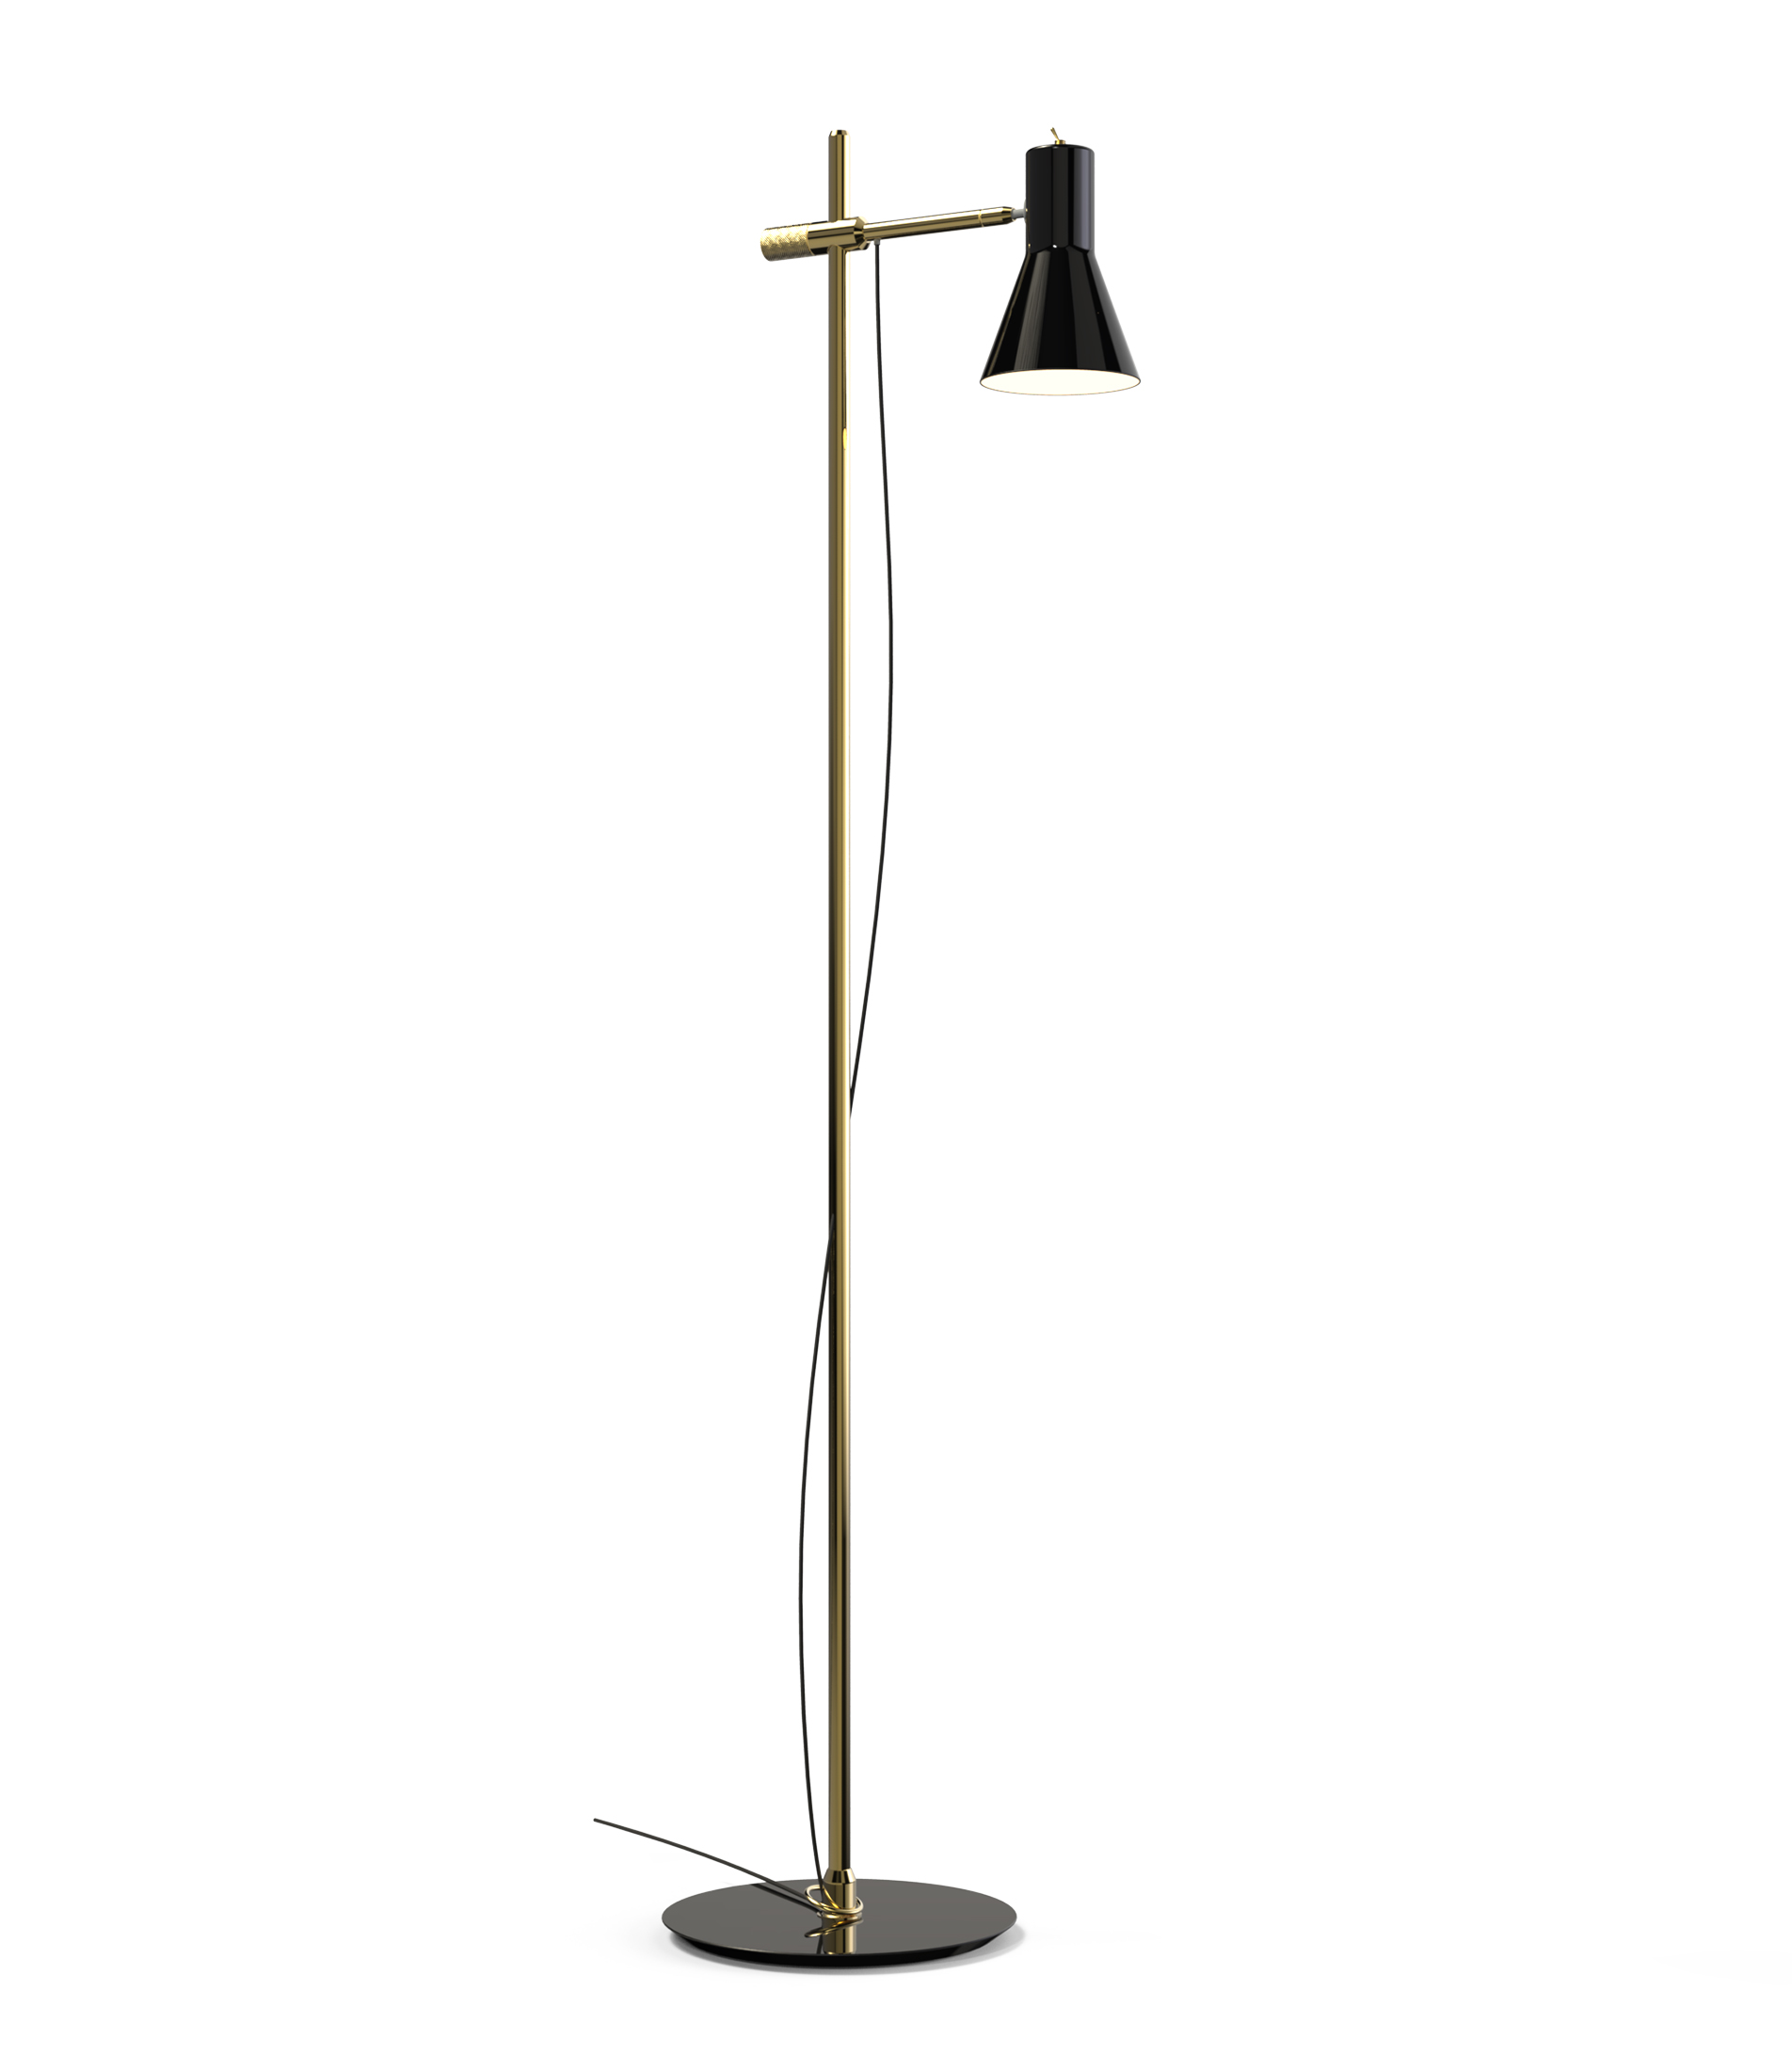 Amazing Lighting Design Ideas To Help You Relax At Home! lighting design ideas Amazing Lighting Design Ideas To Help You Relax At Home! Celebrate Coleman Hawkins Birthday With Coleman Floor Lamp 4